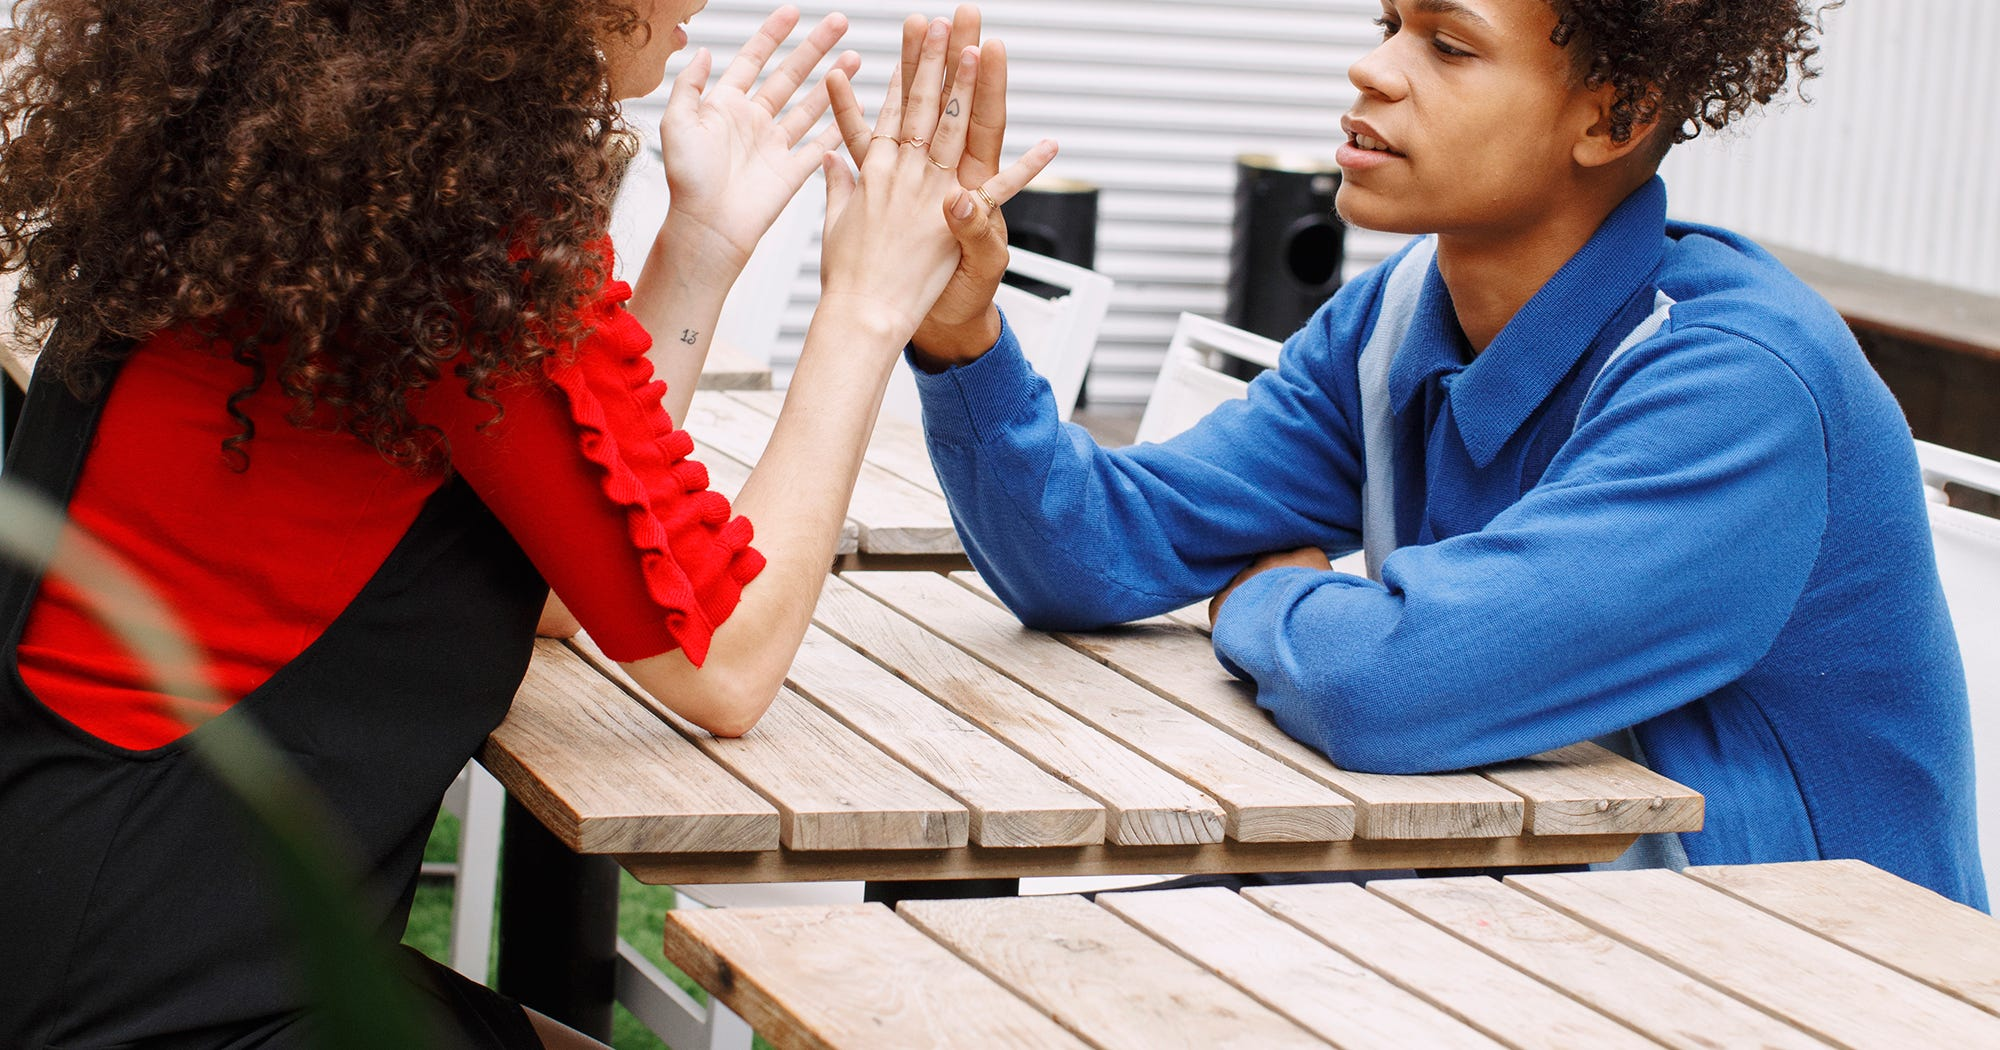 10 Ways To Get Over Your Relationship Insecurities